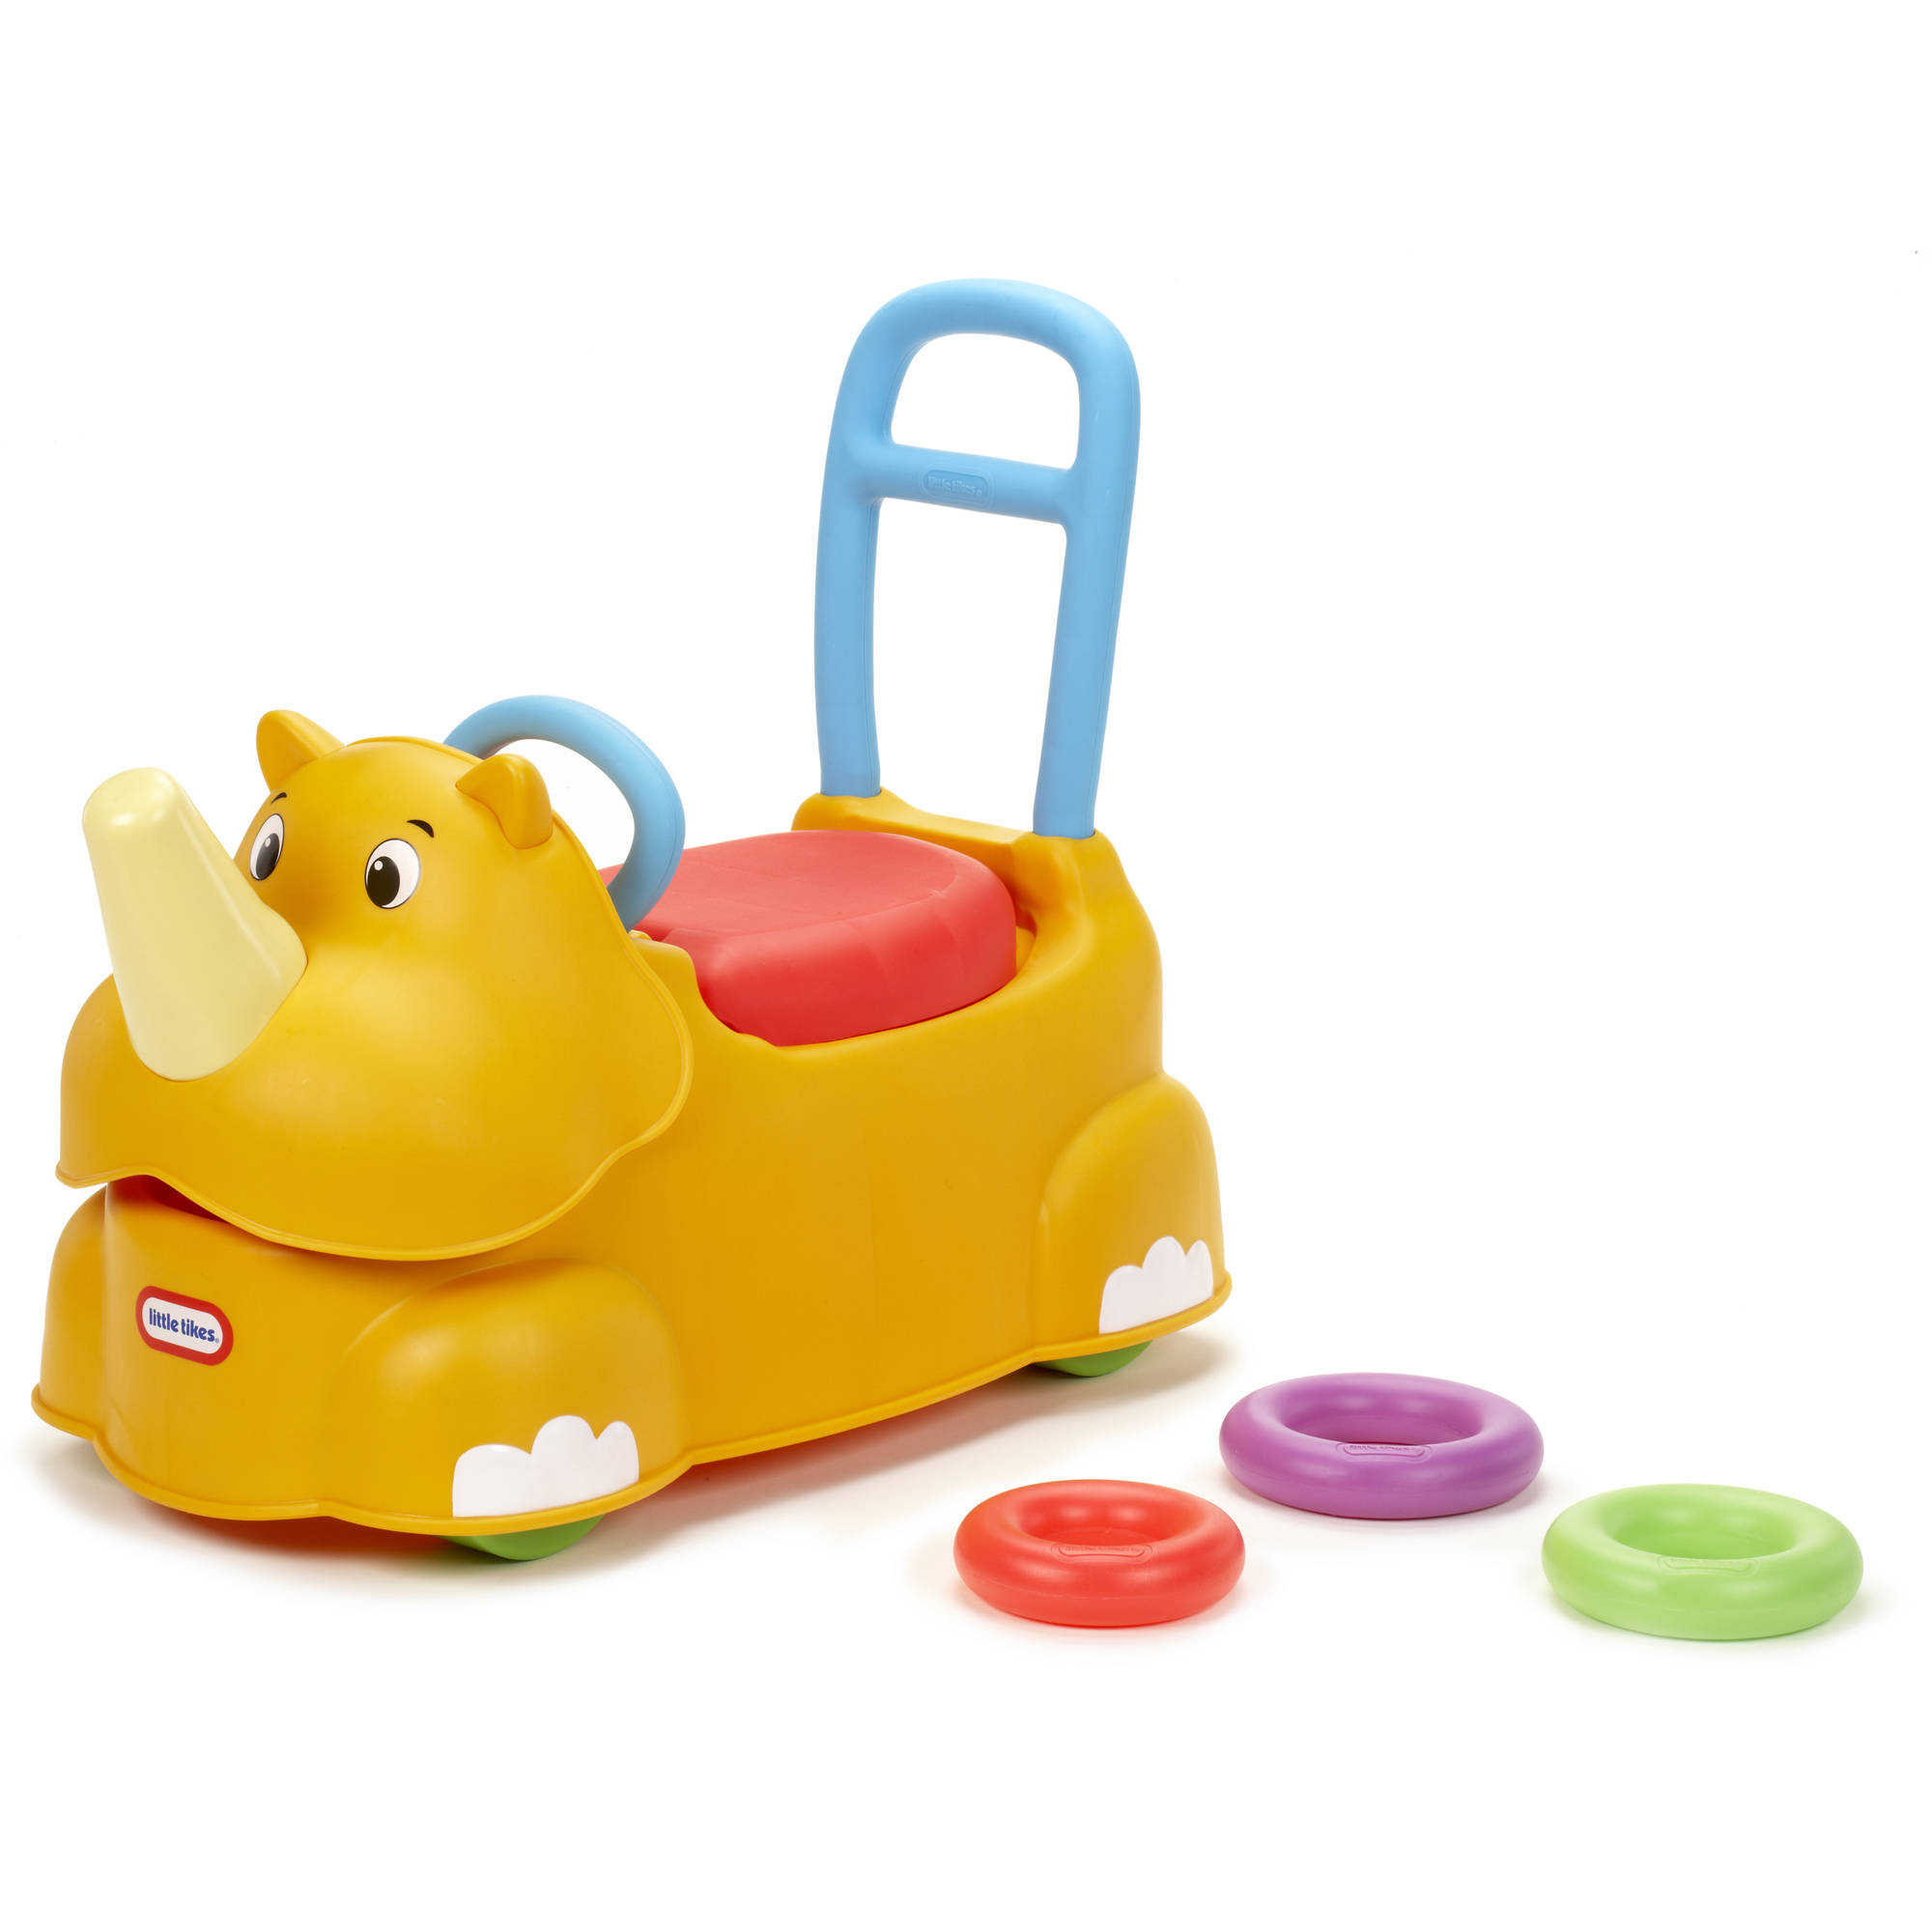 Little Tikes Scoot-Around Animal Riding Toy, Rhino by MGA Entertainment